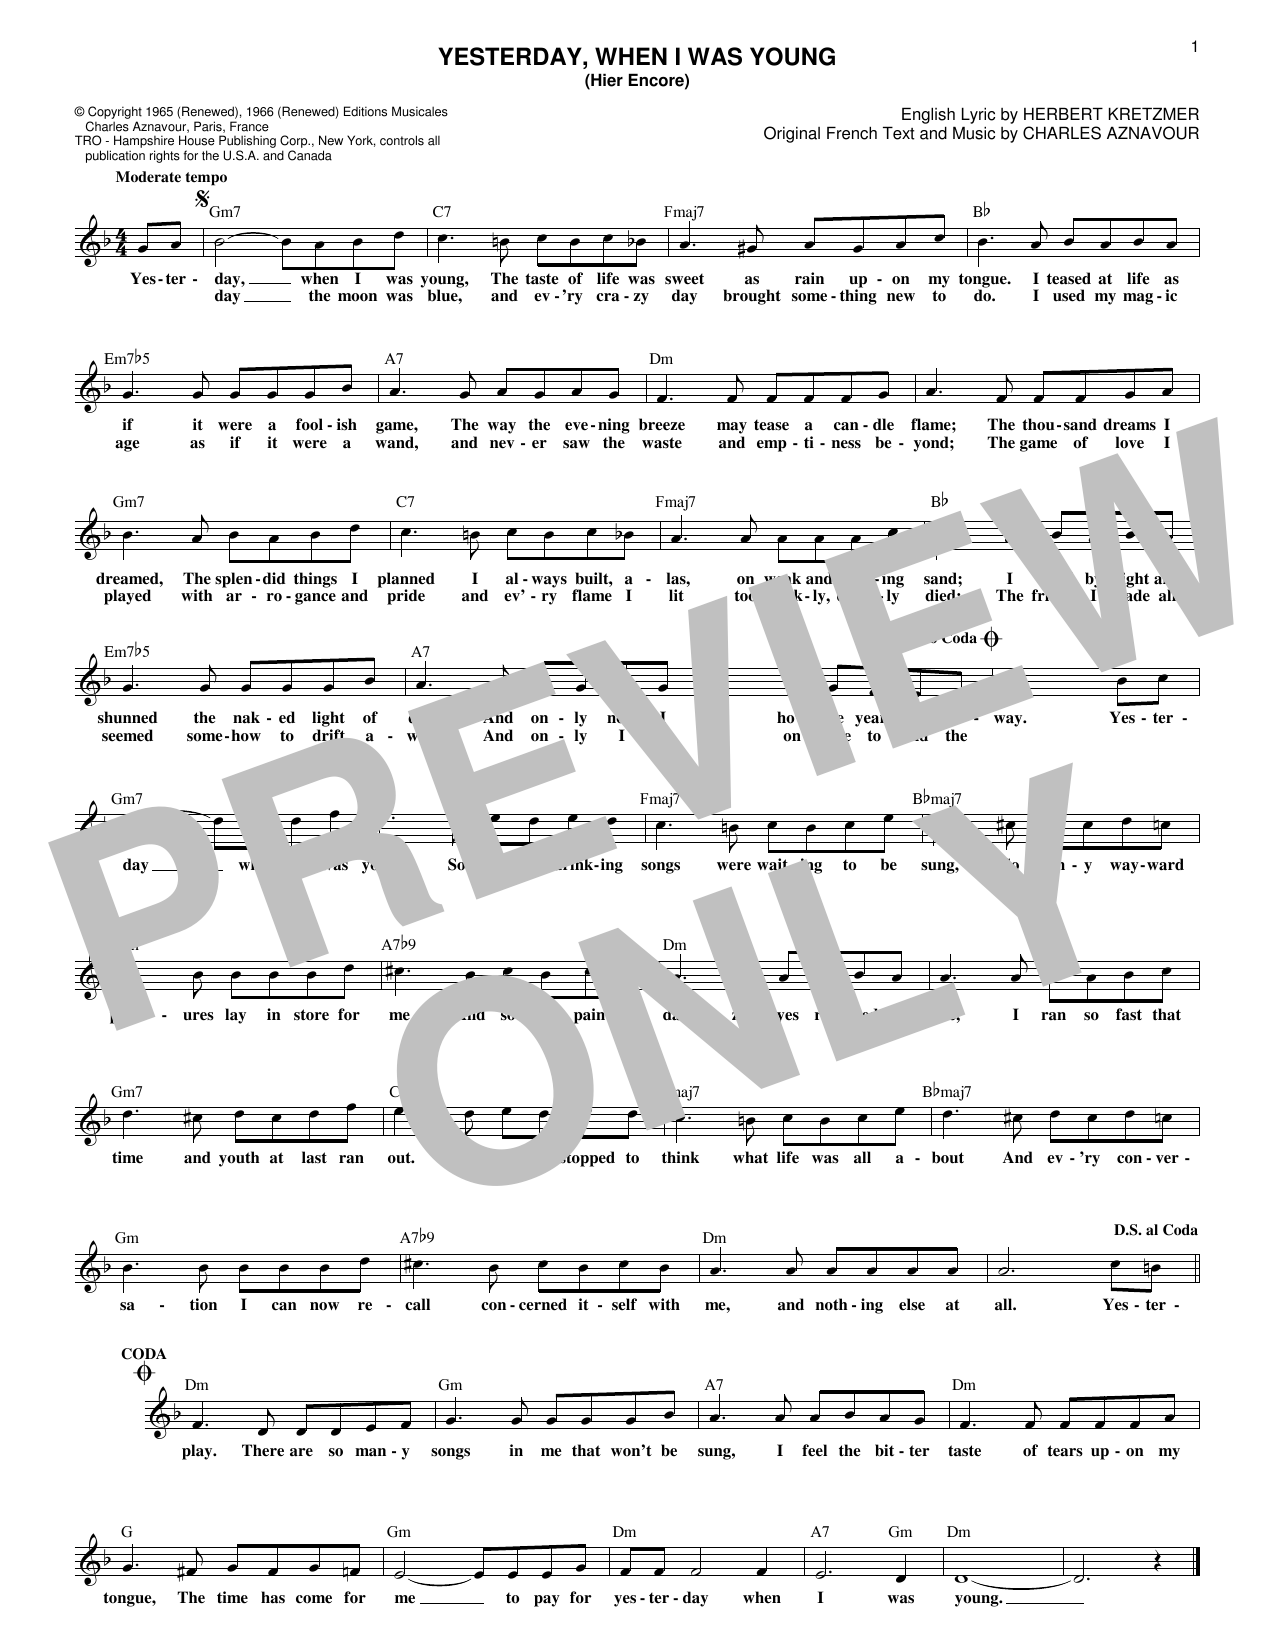 Yesterday, When I Was Young (Hier Encore) (Lead Sheet / Fake Book)